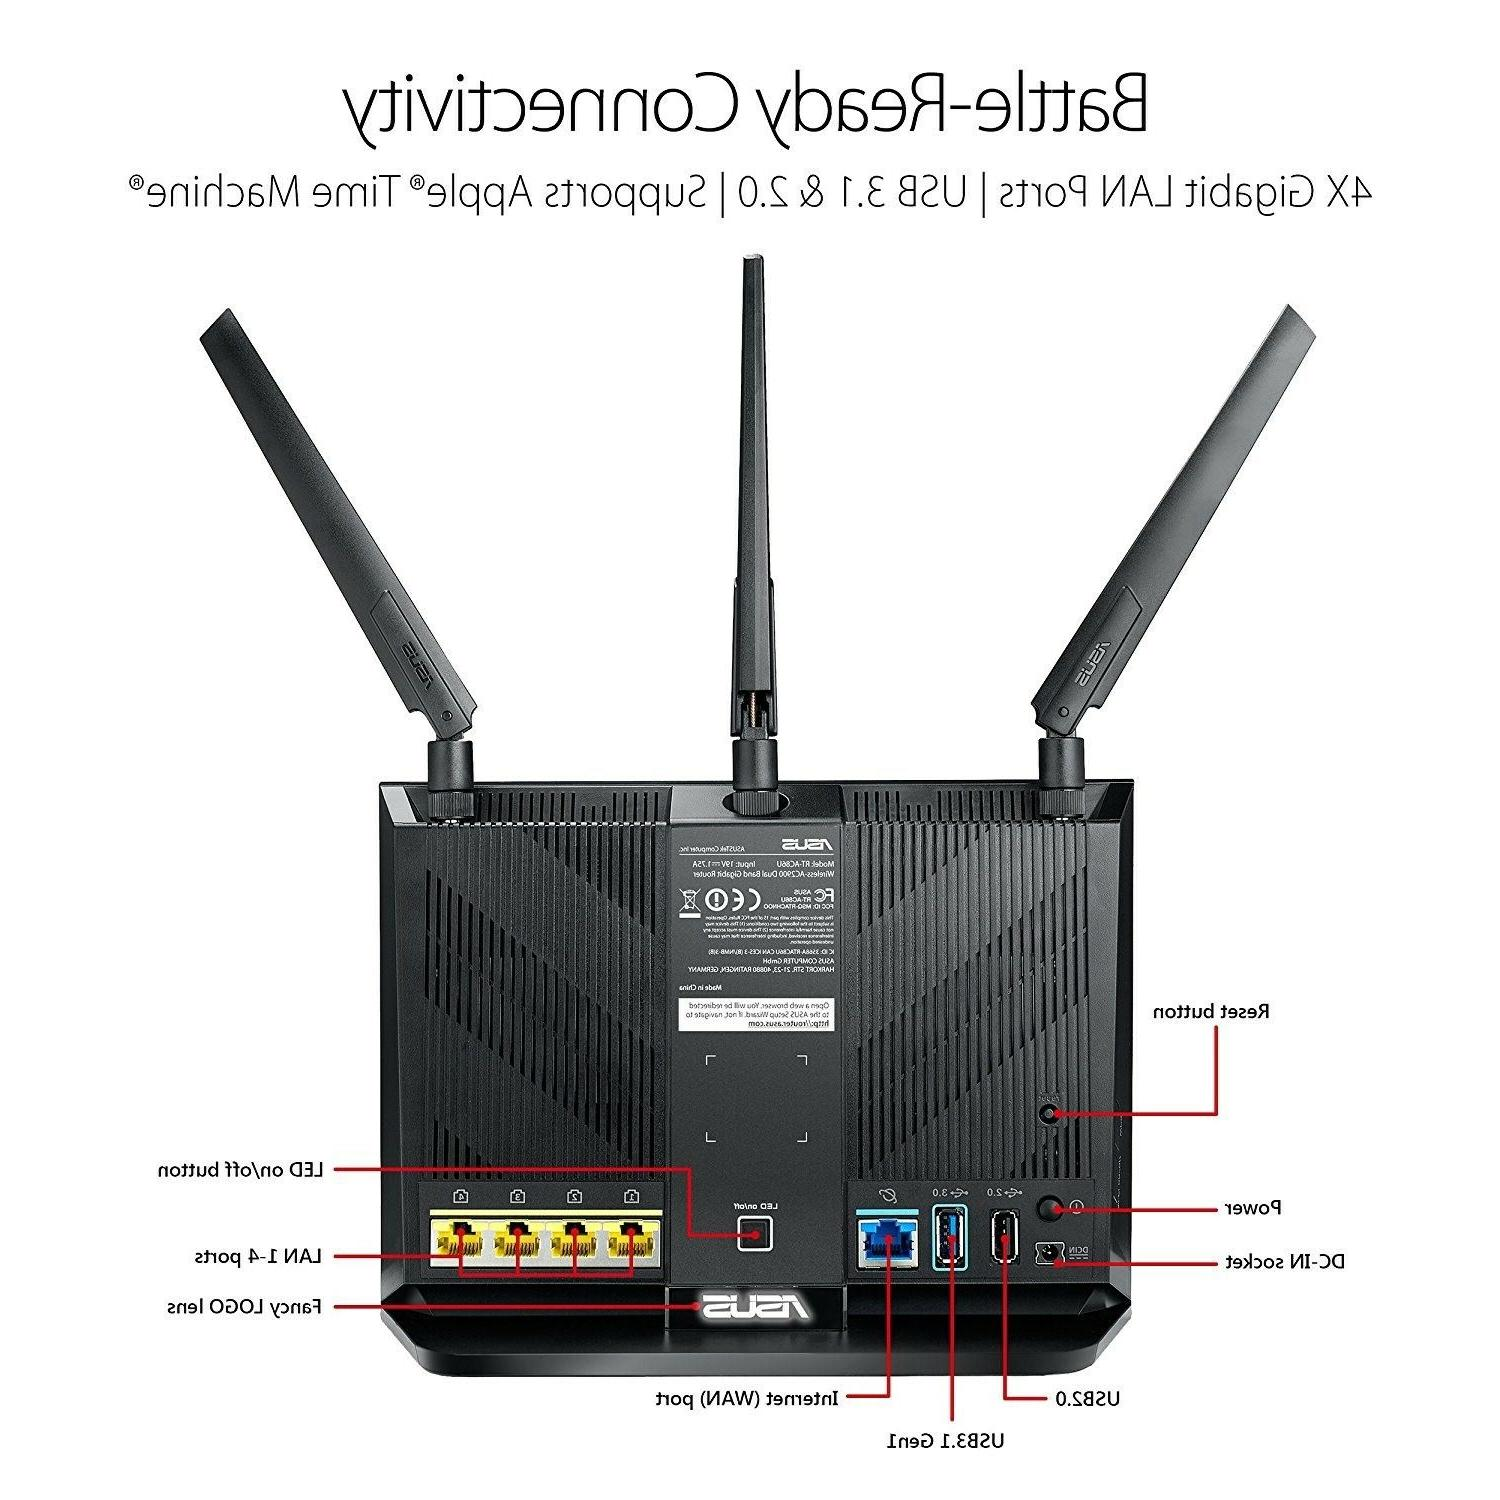 -NEW- Dual-band Gigabit Wireless Router